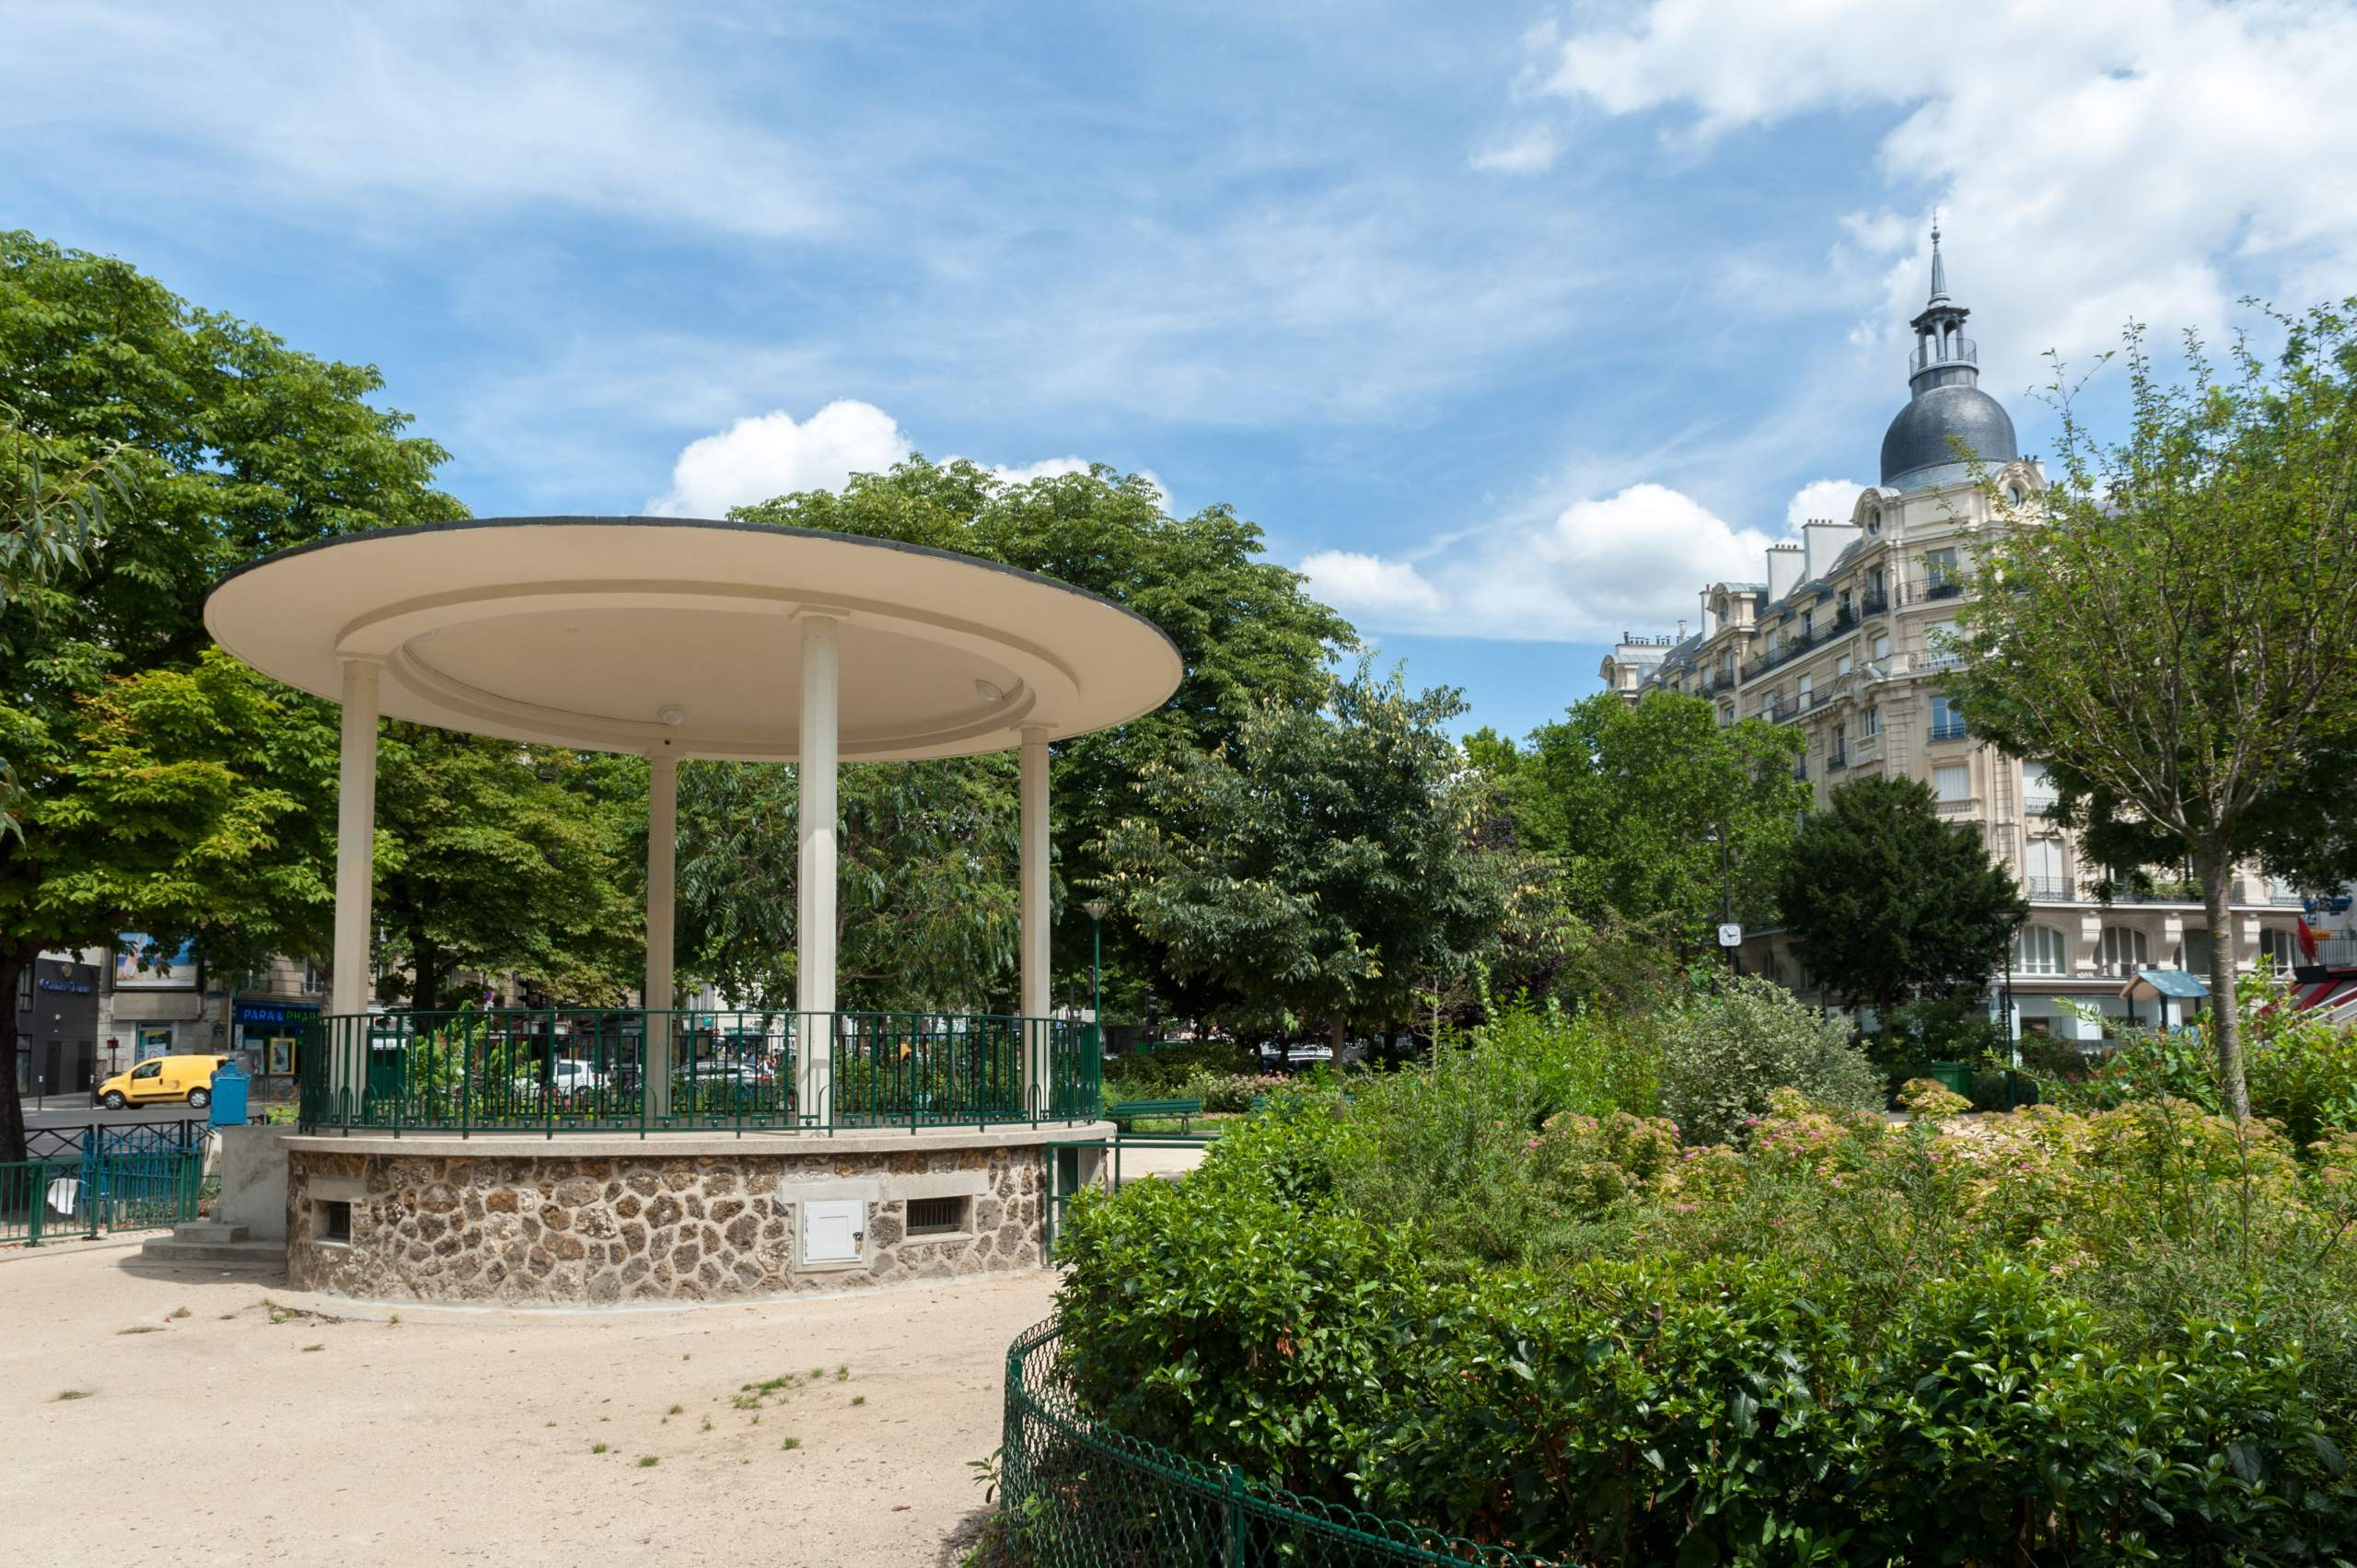 Haussmann-era Buildings and Park